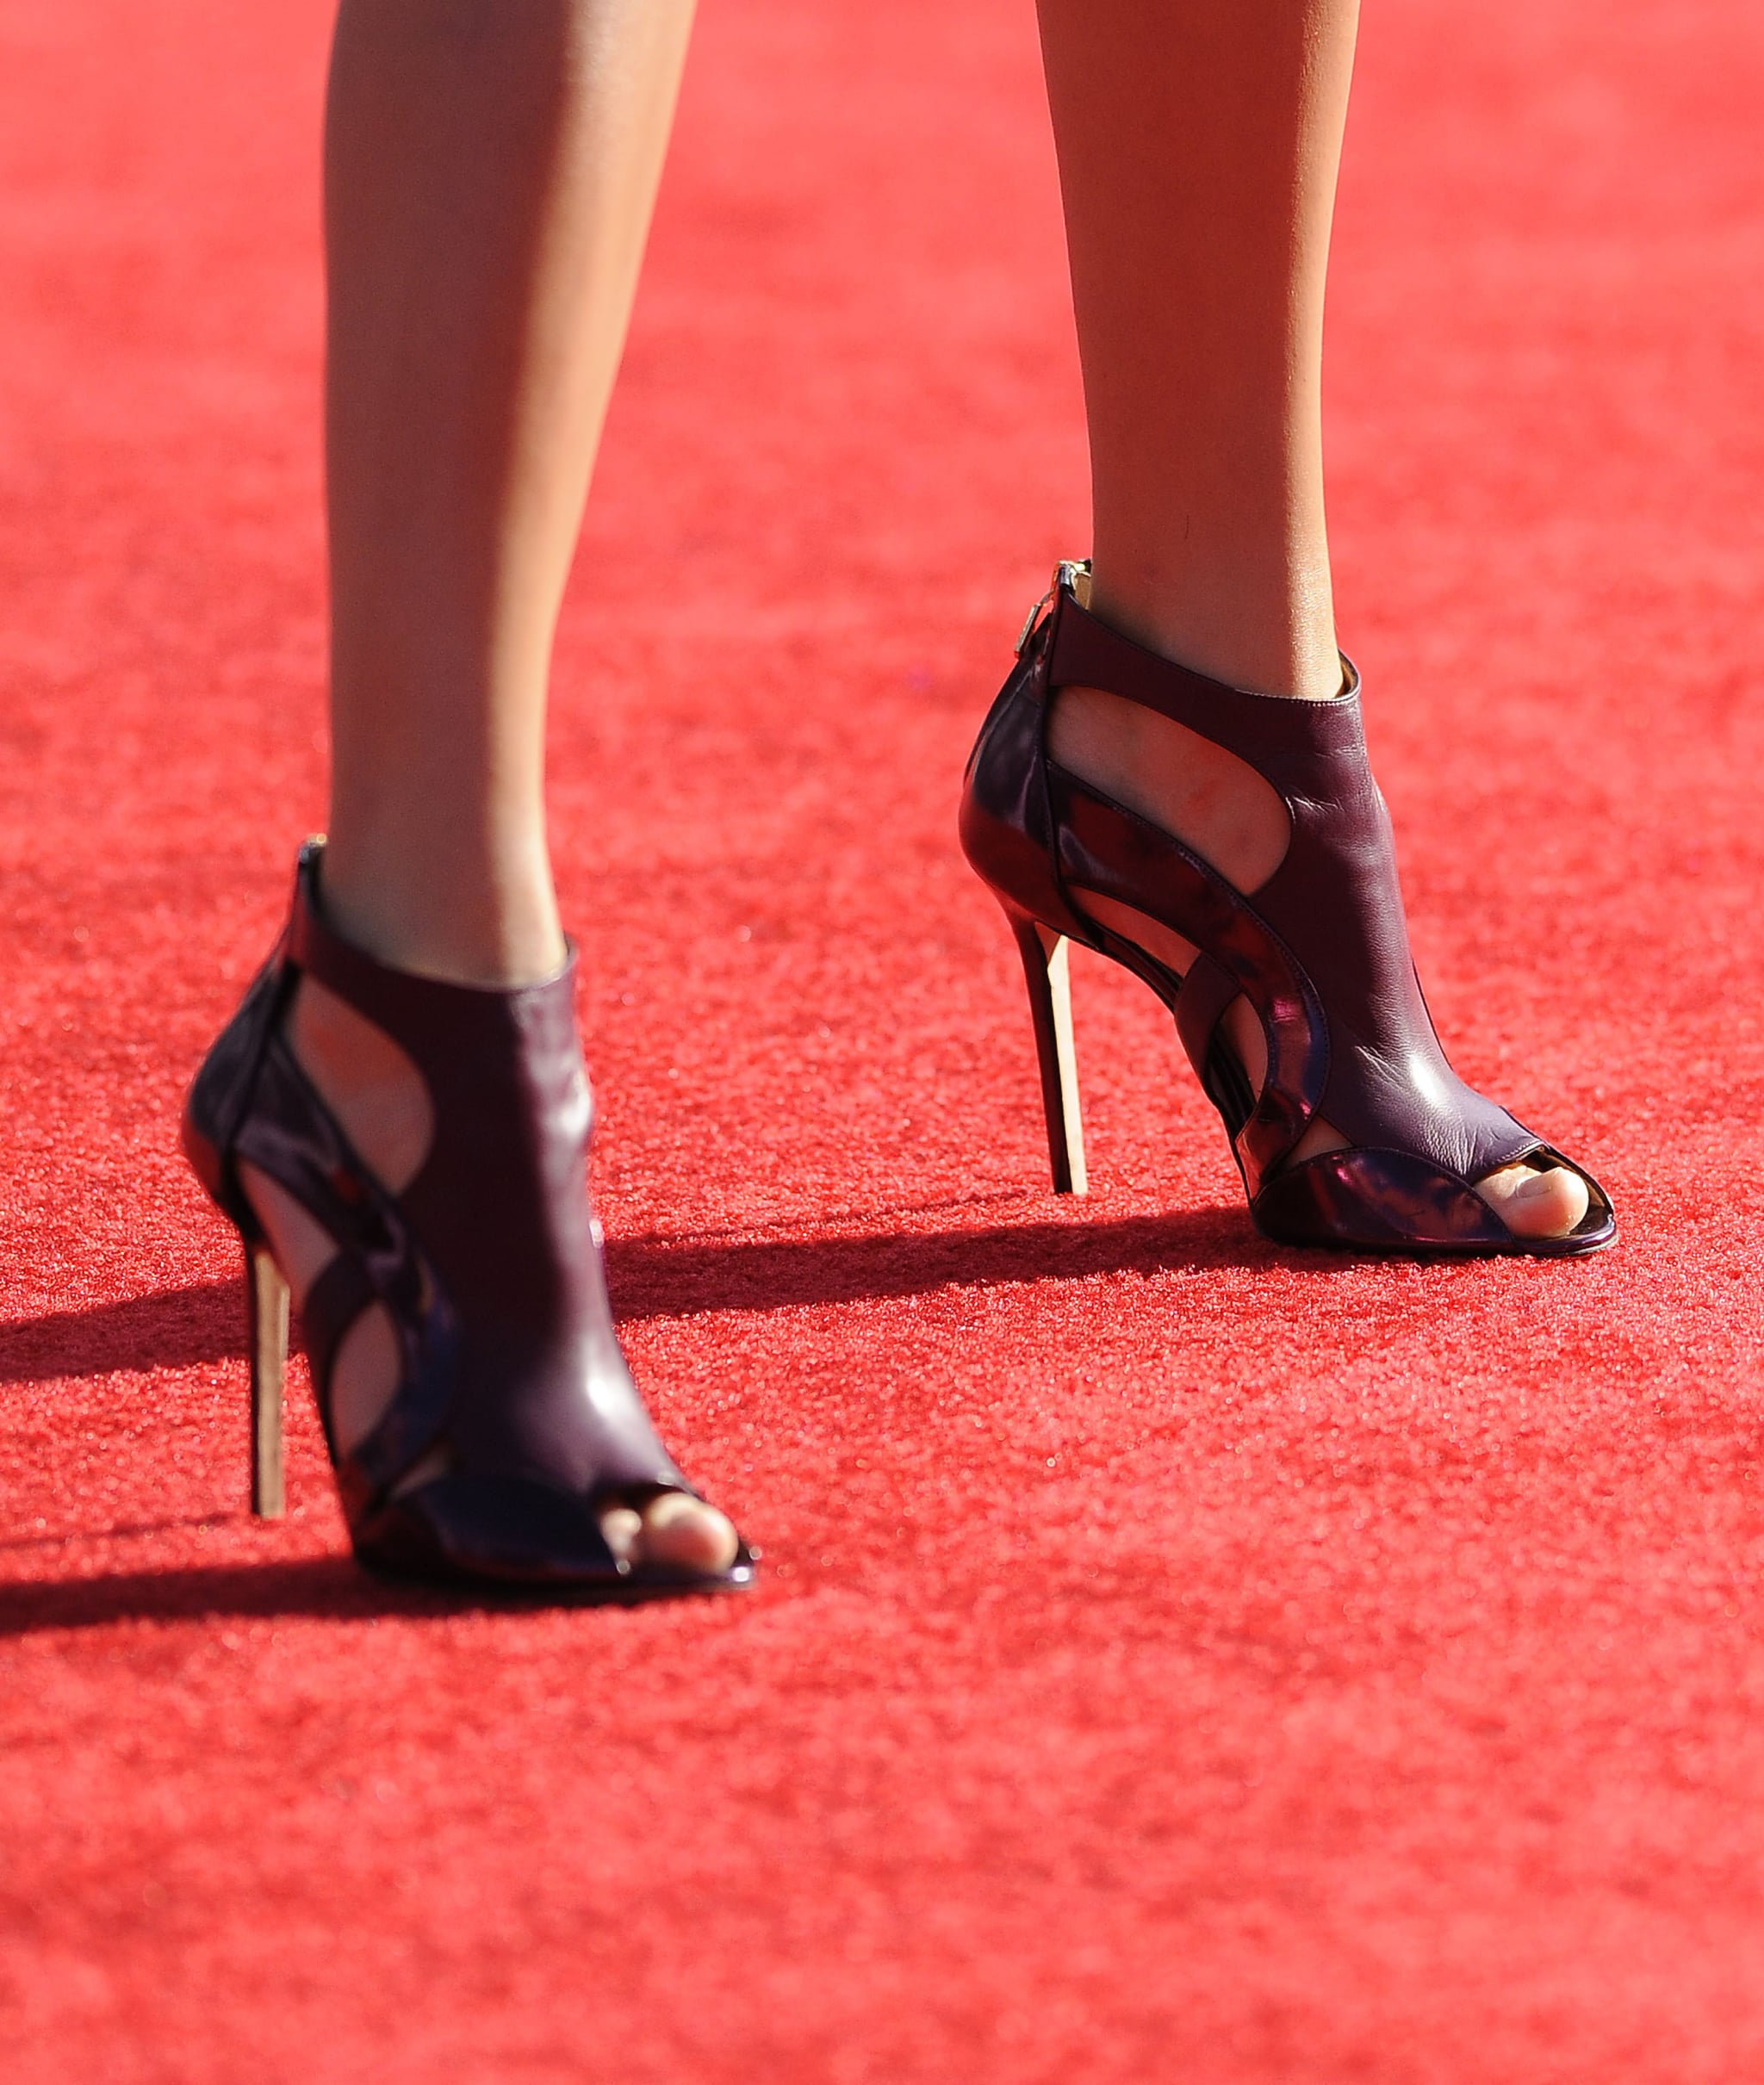 Taylor Swift completed her fun romper with these leather Elie Saab pumps.